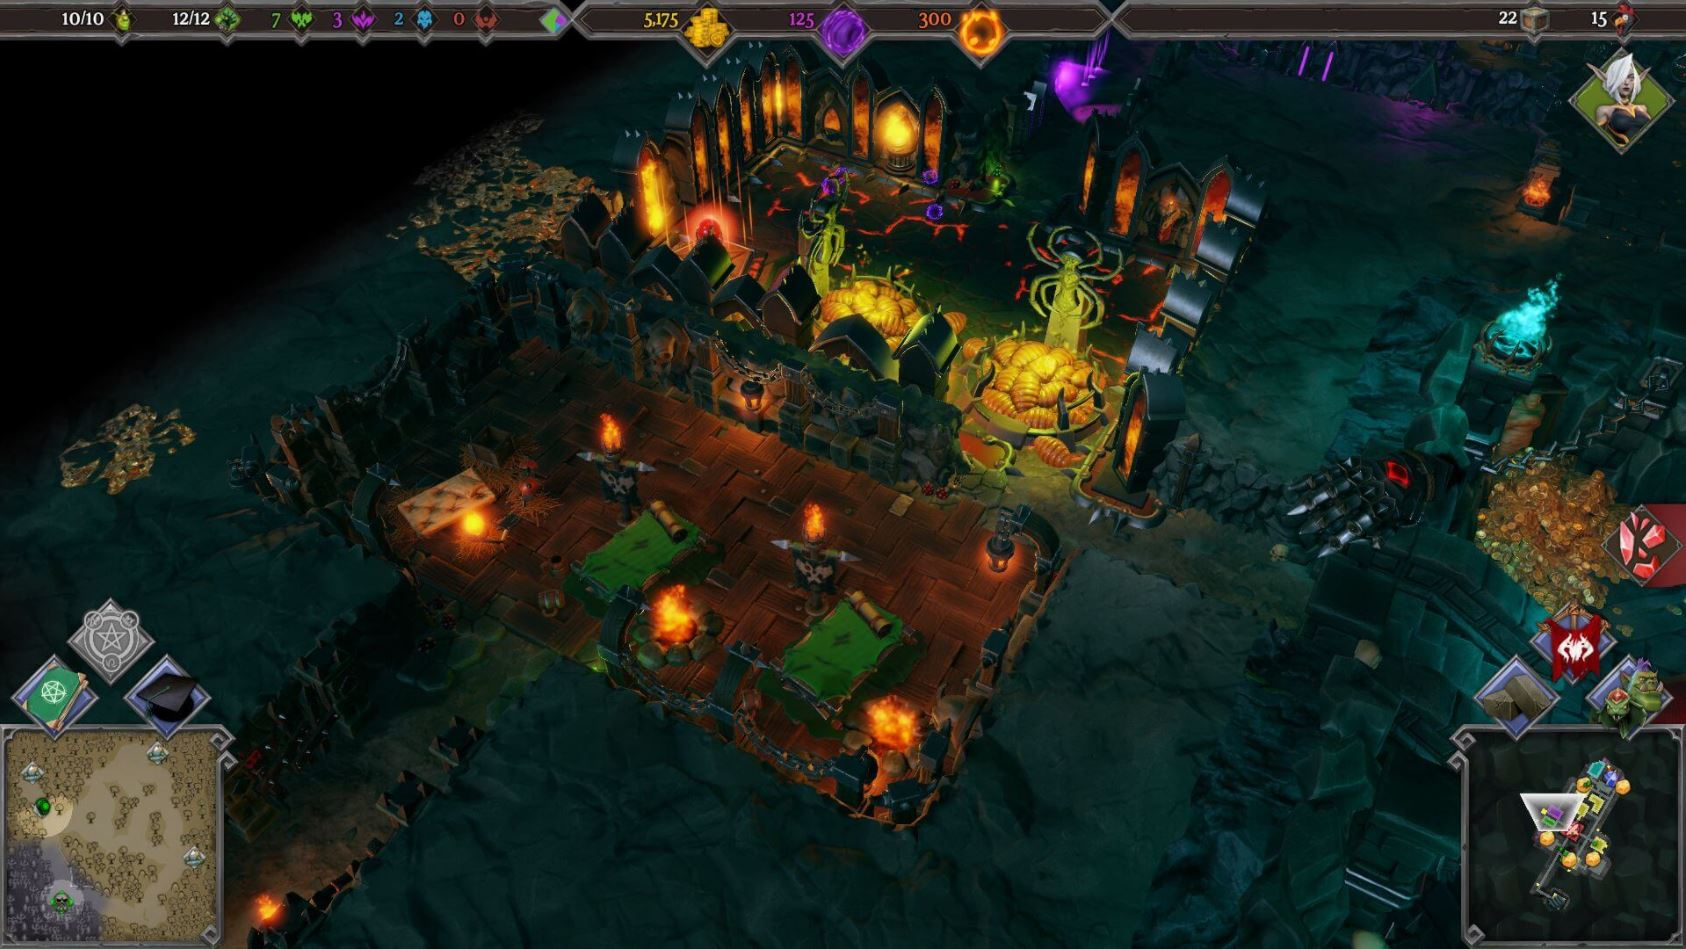 Dungeons 3 sur Steam promo dungeons 2 screen1464